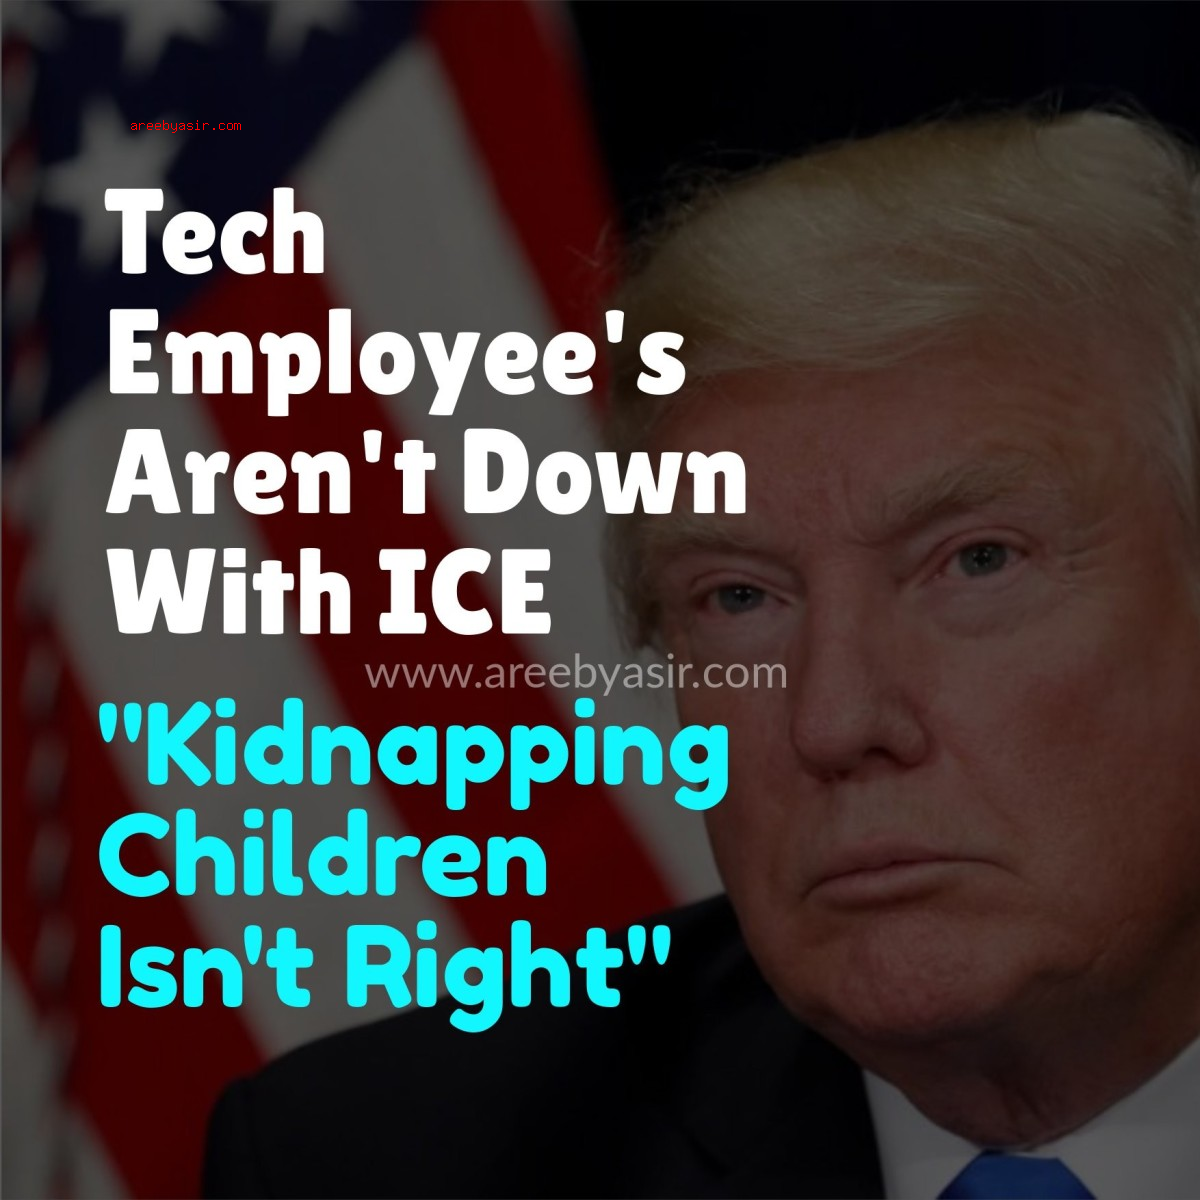 Tech Employee's Aren't Down With ICE